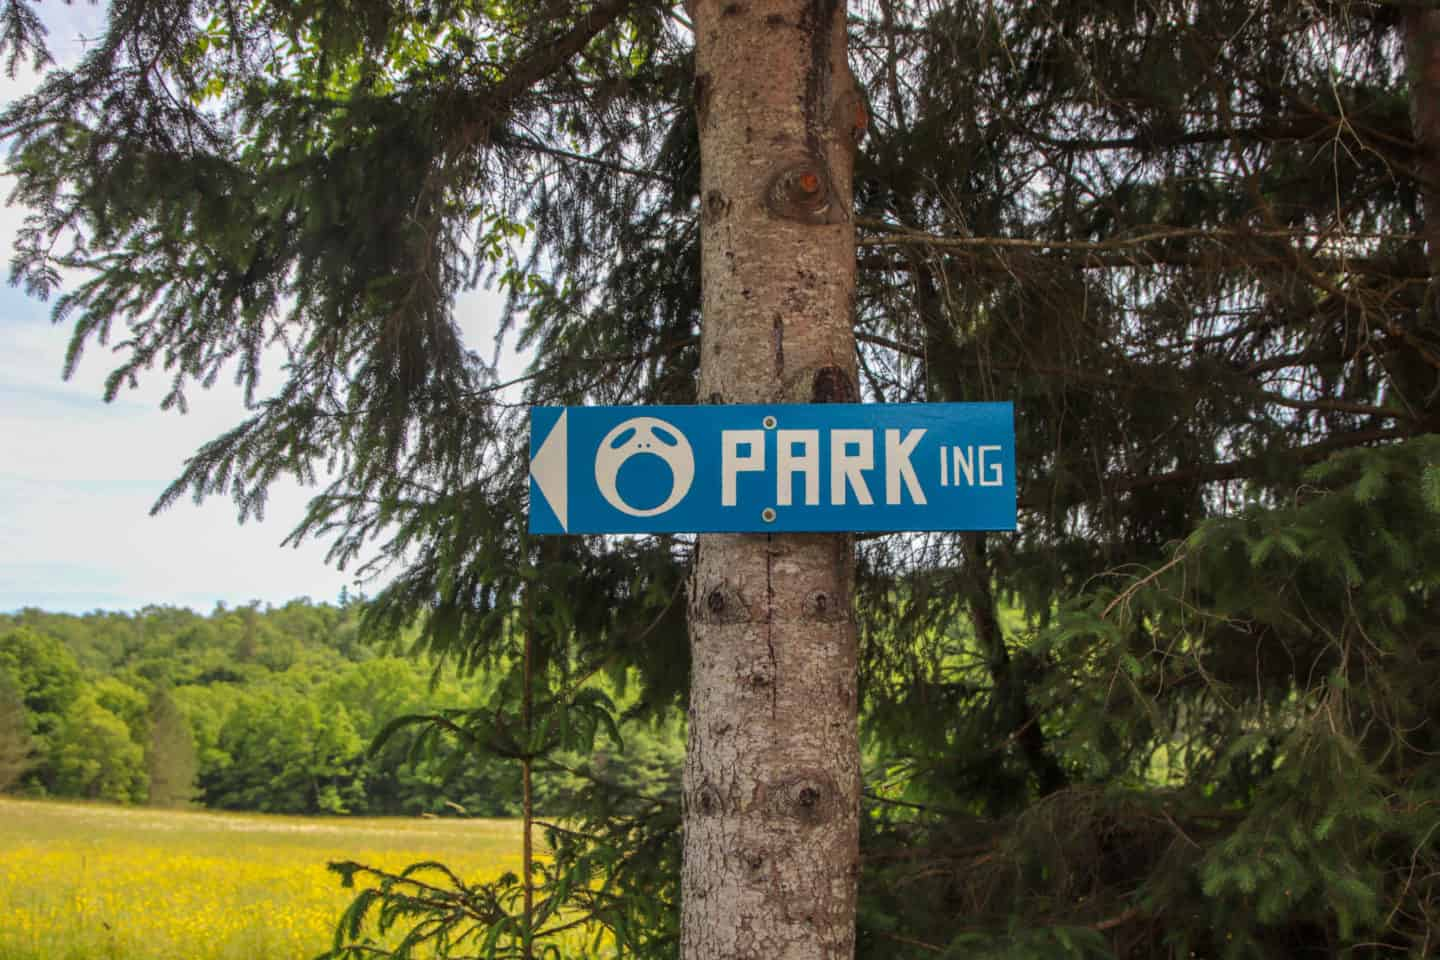 Parking sign to show you where the Screaming Heads property is